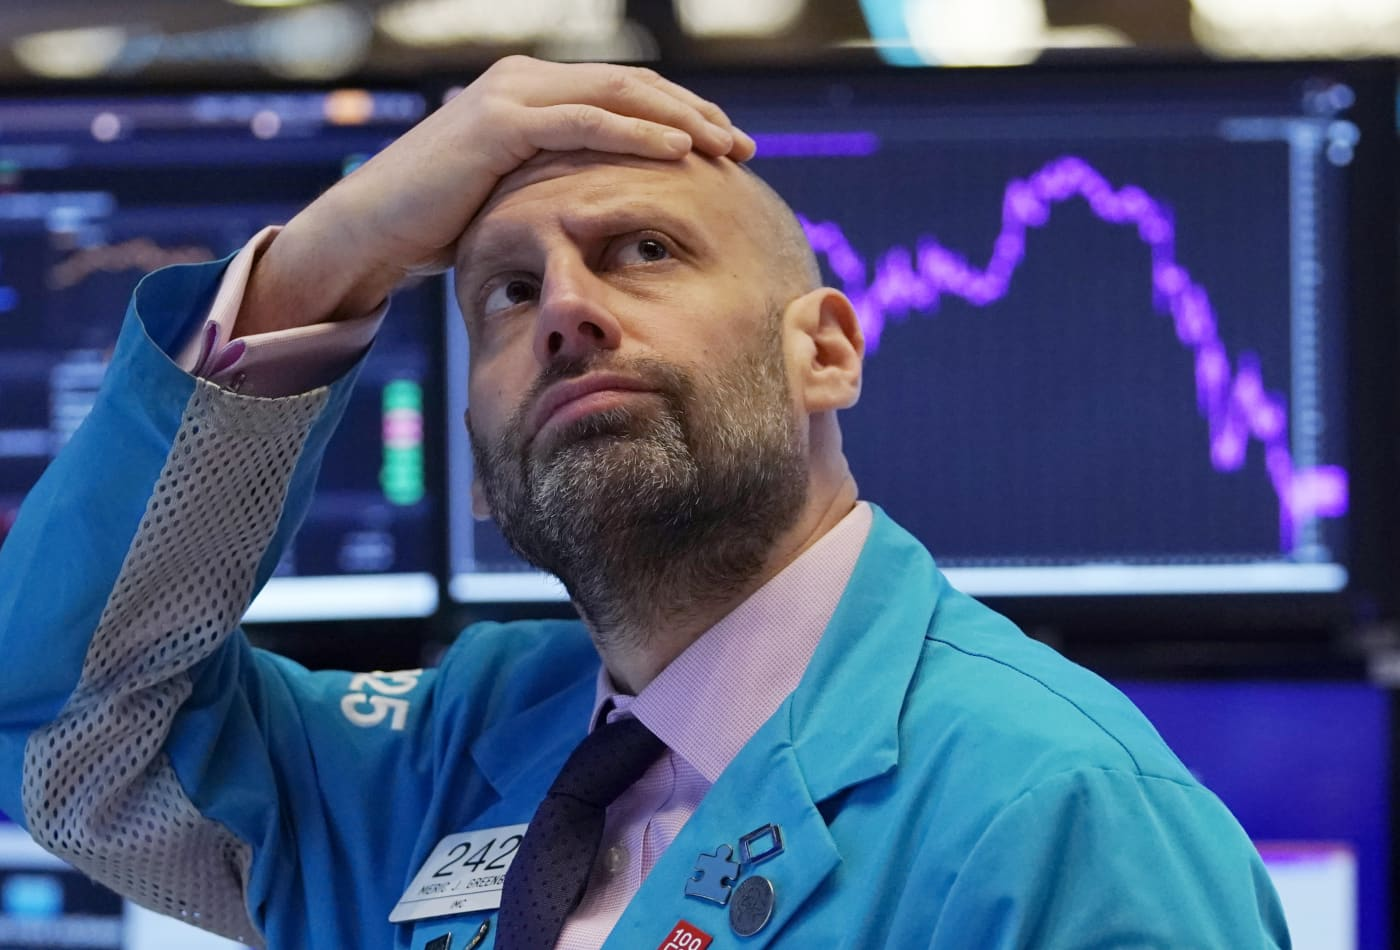 The market triggered a 'circuit breaker' that kept stocks from falling through the floor. Here's what you need to know